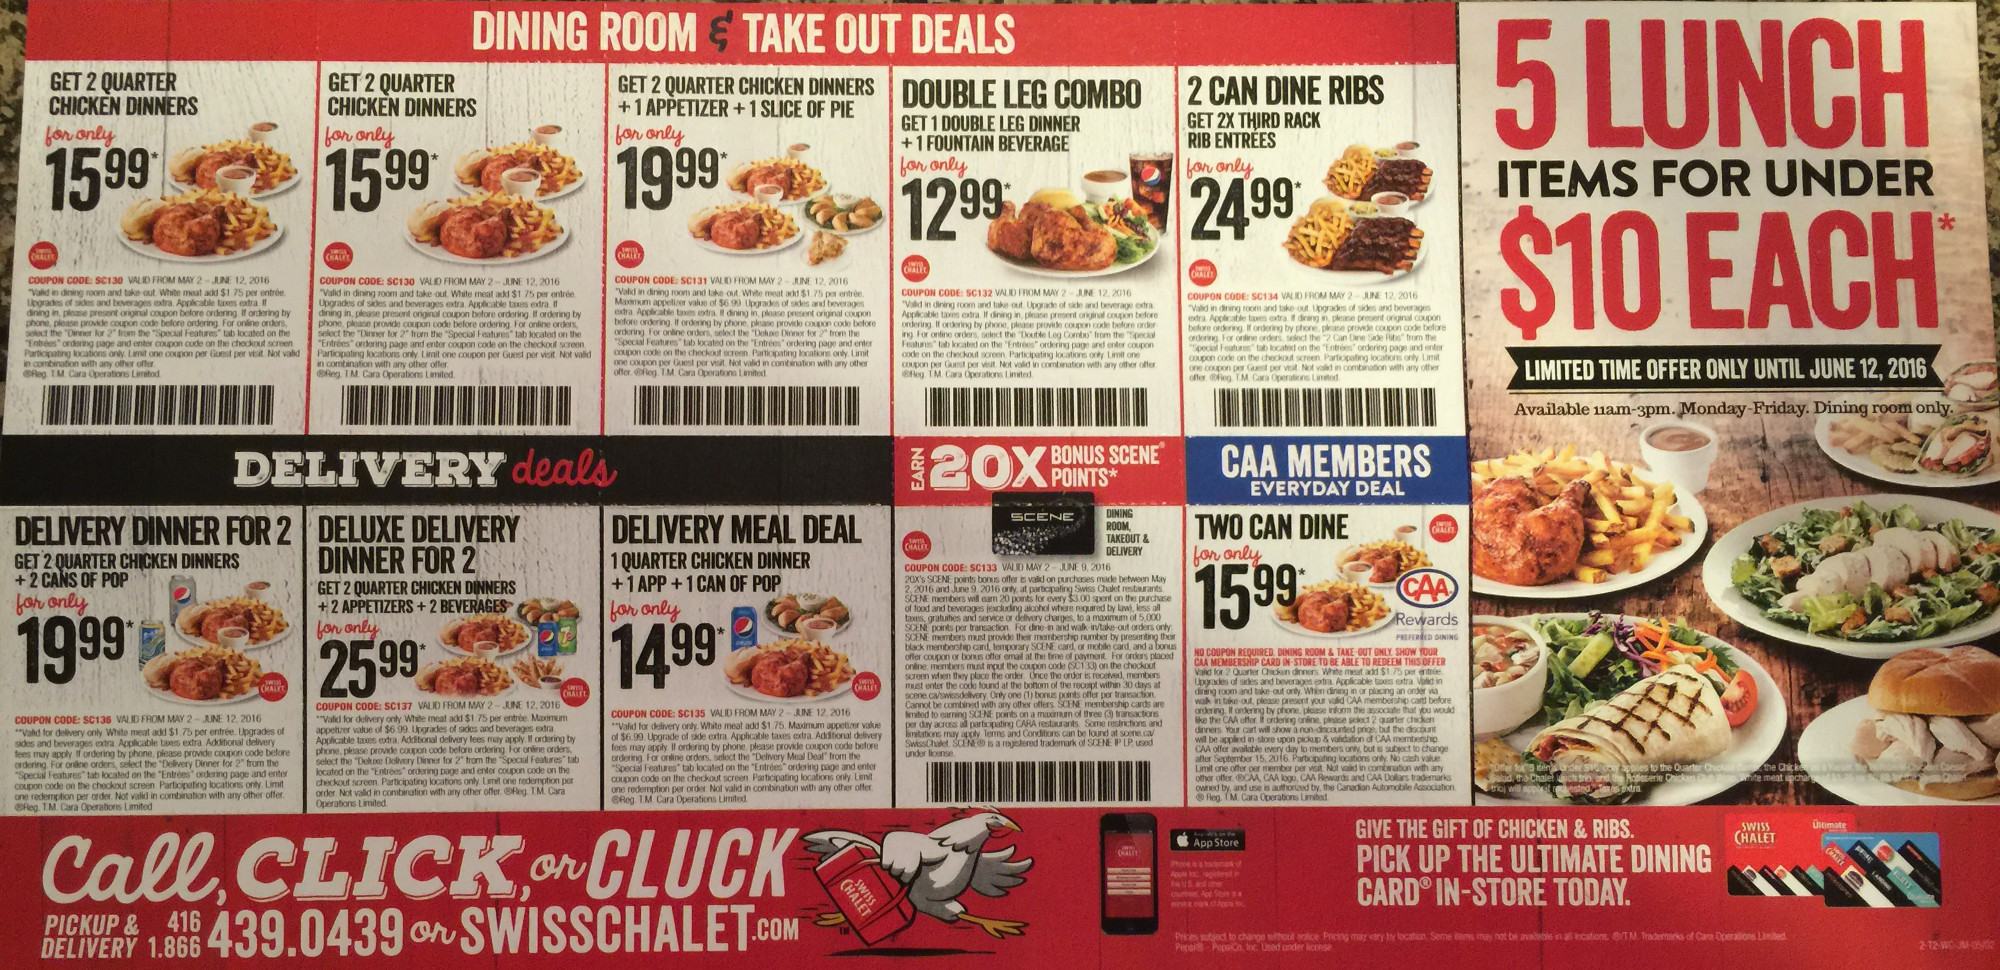 picture about Sport Chalet Printable Coupon called Swiss chalet printable coupon codes december 2018 : Mommy will save